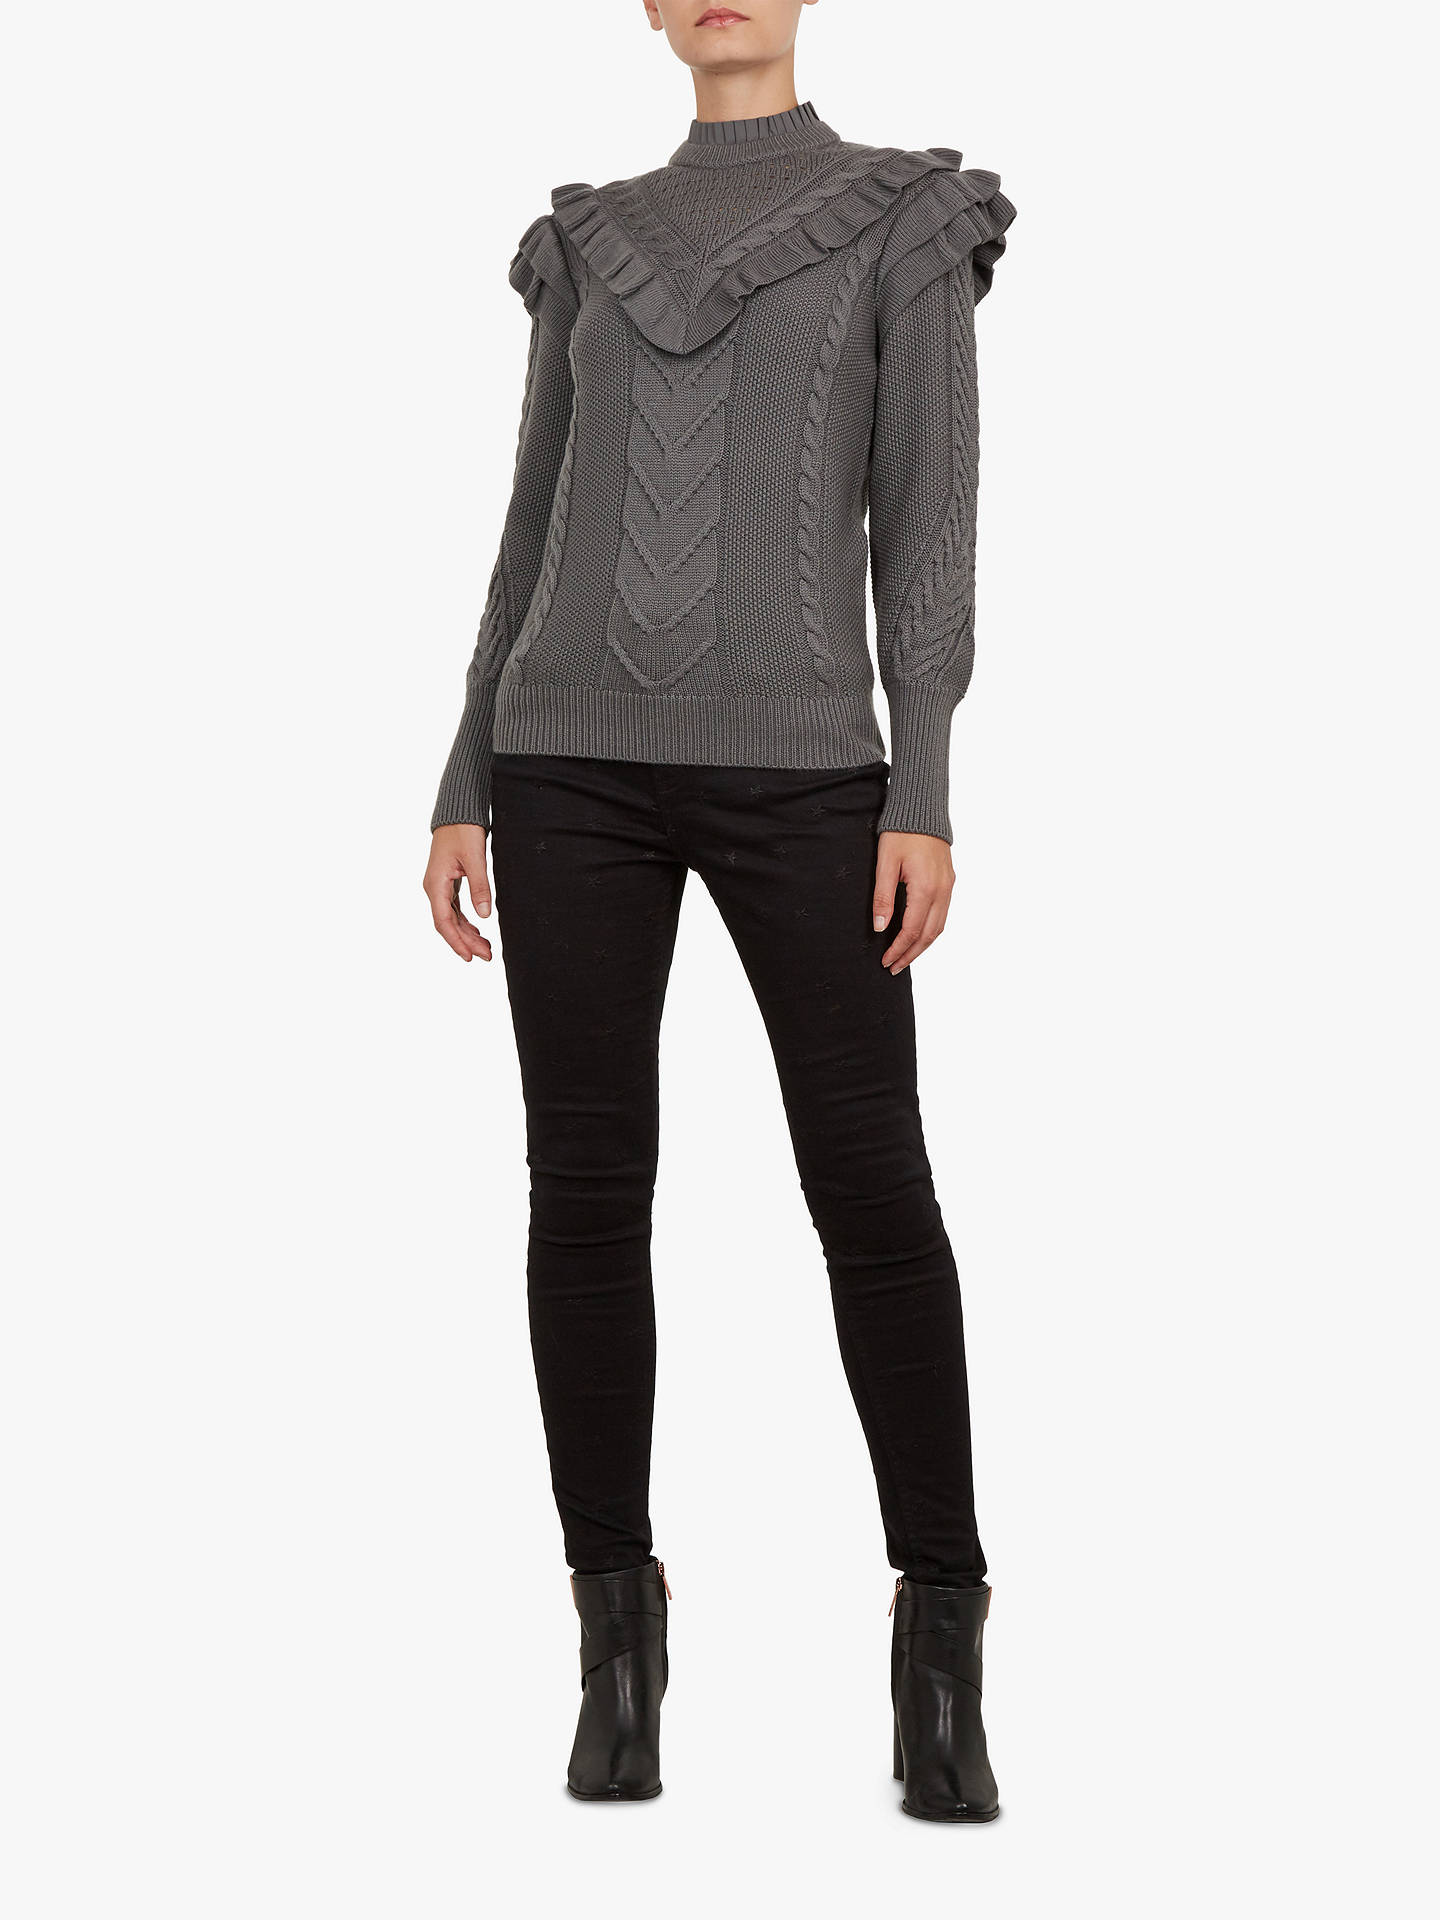 BuyTed Baker Denita Funnel Neck Ruffle Jumper, Charcoal, M Online at johnlewis.com